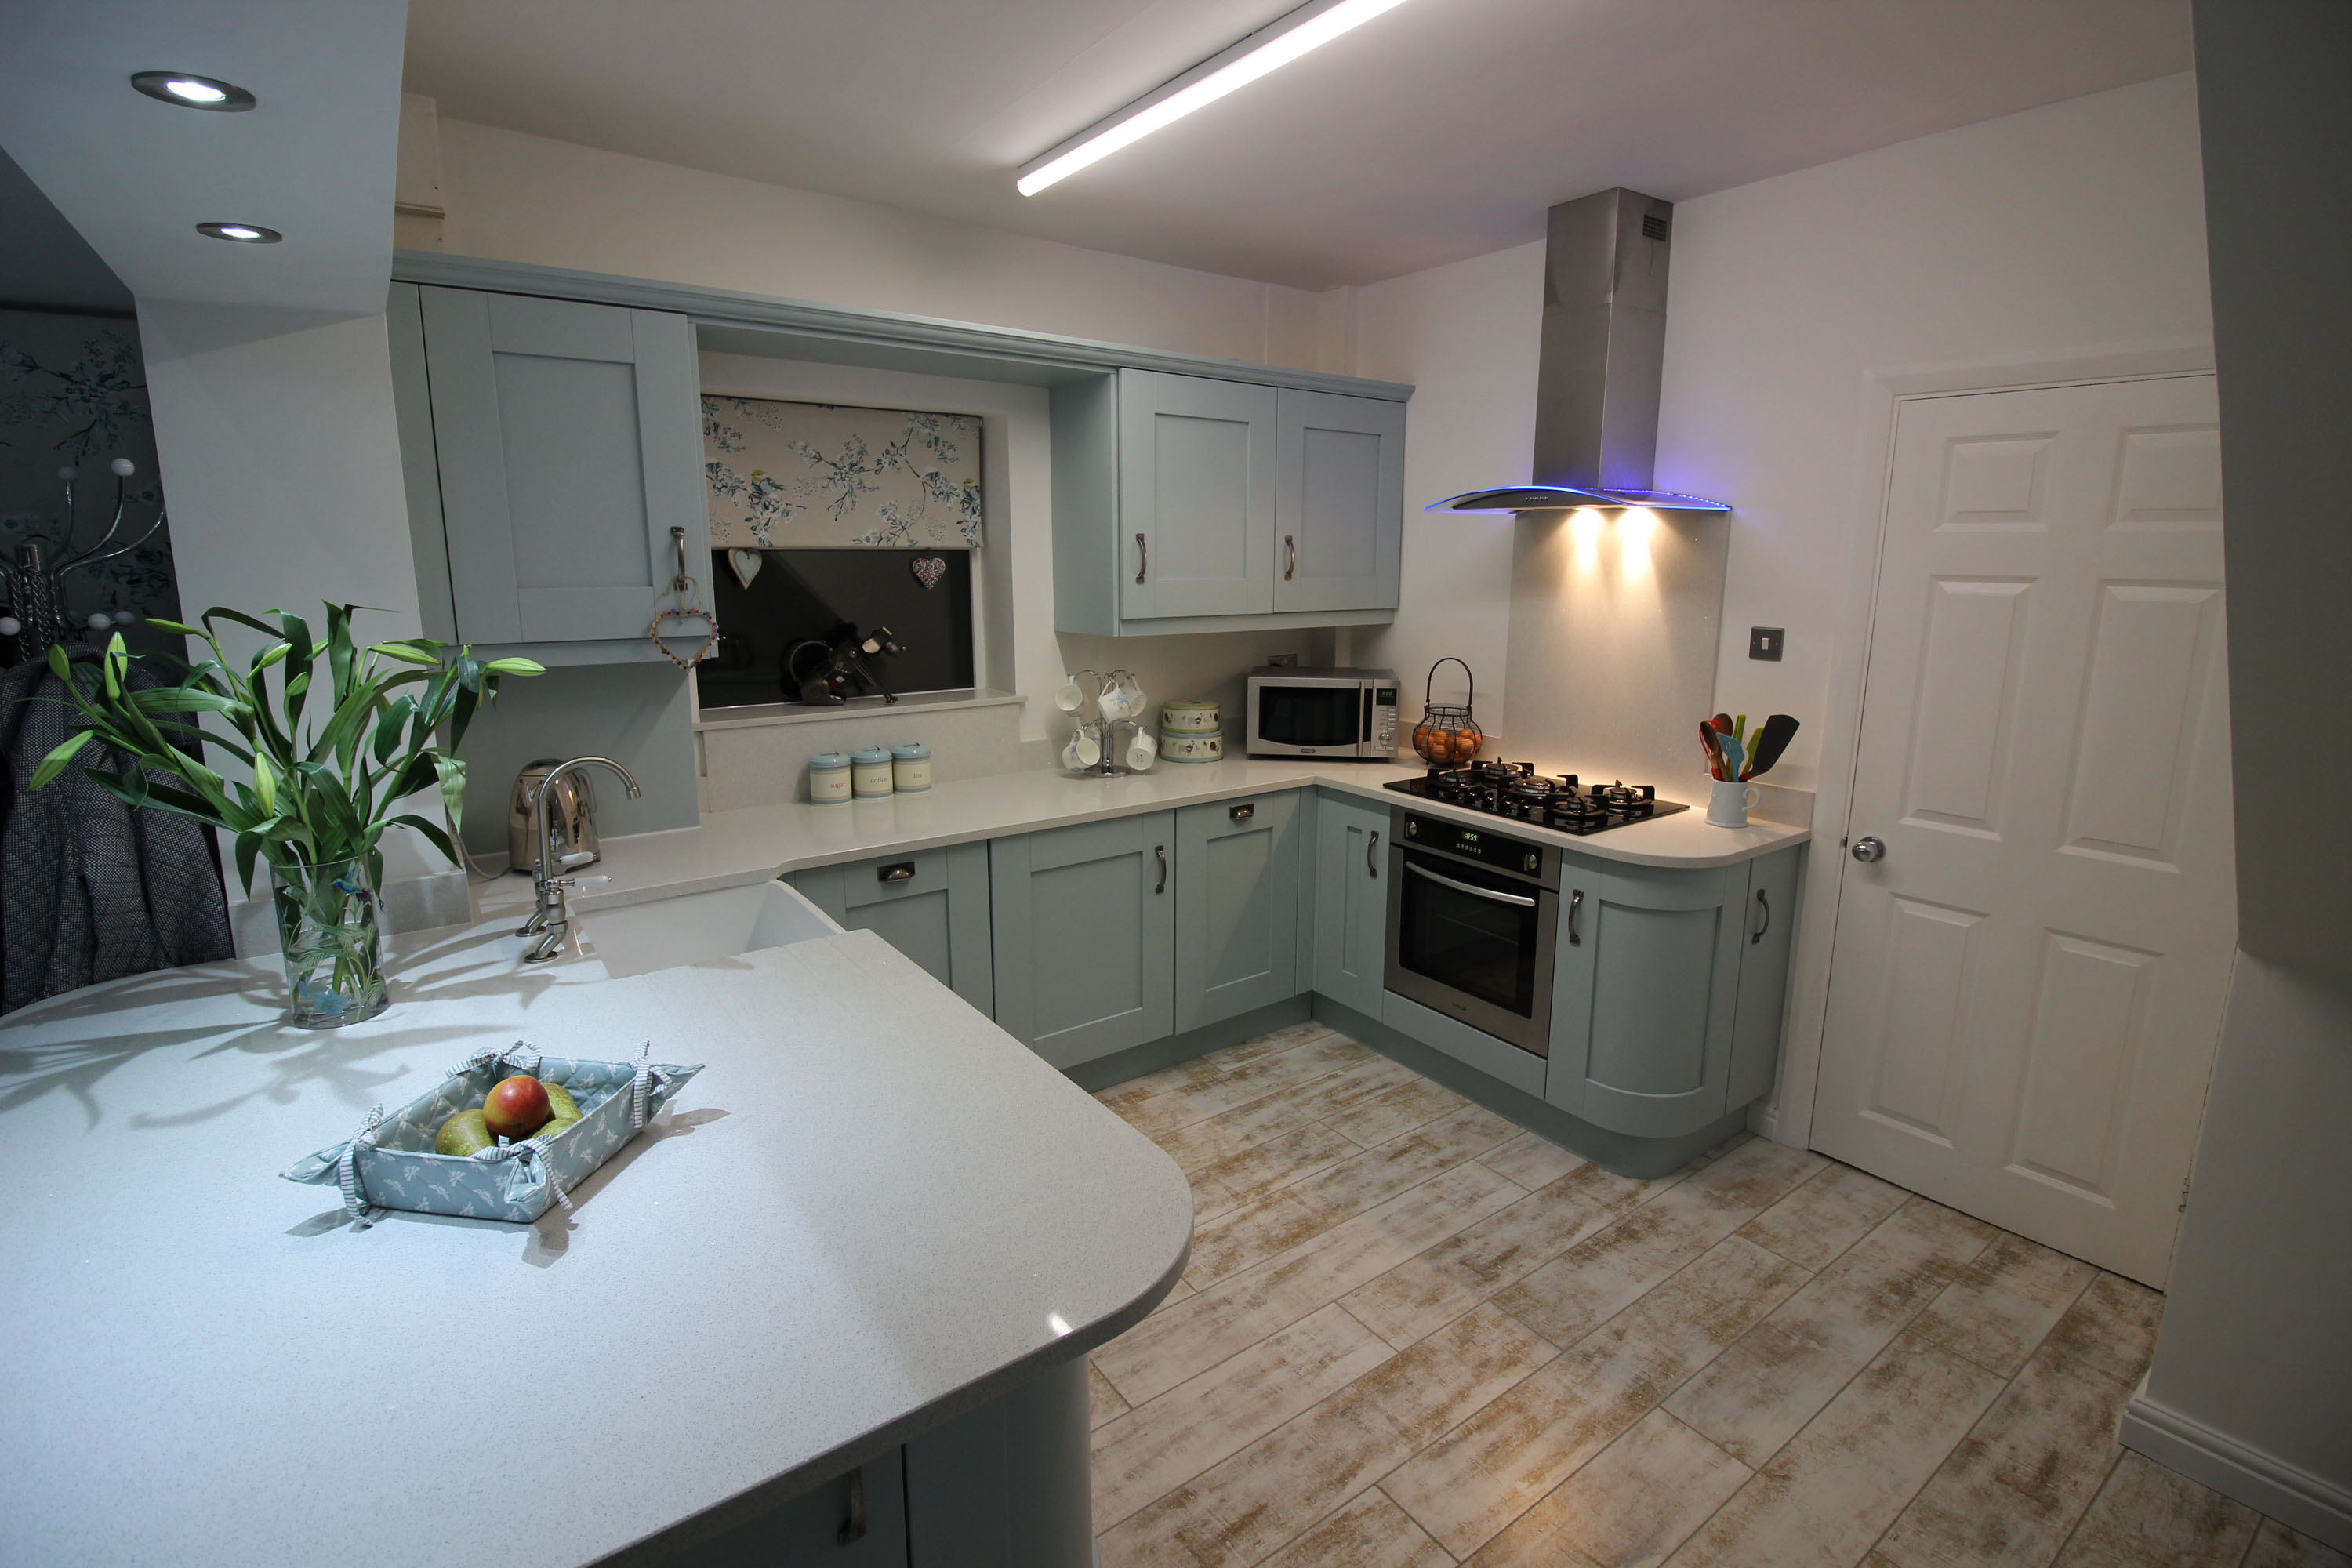 Shabby Chic Style Kitchen Featuring the Windsor Shaker Range in Painted Powder Blue